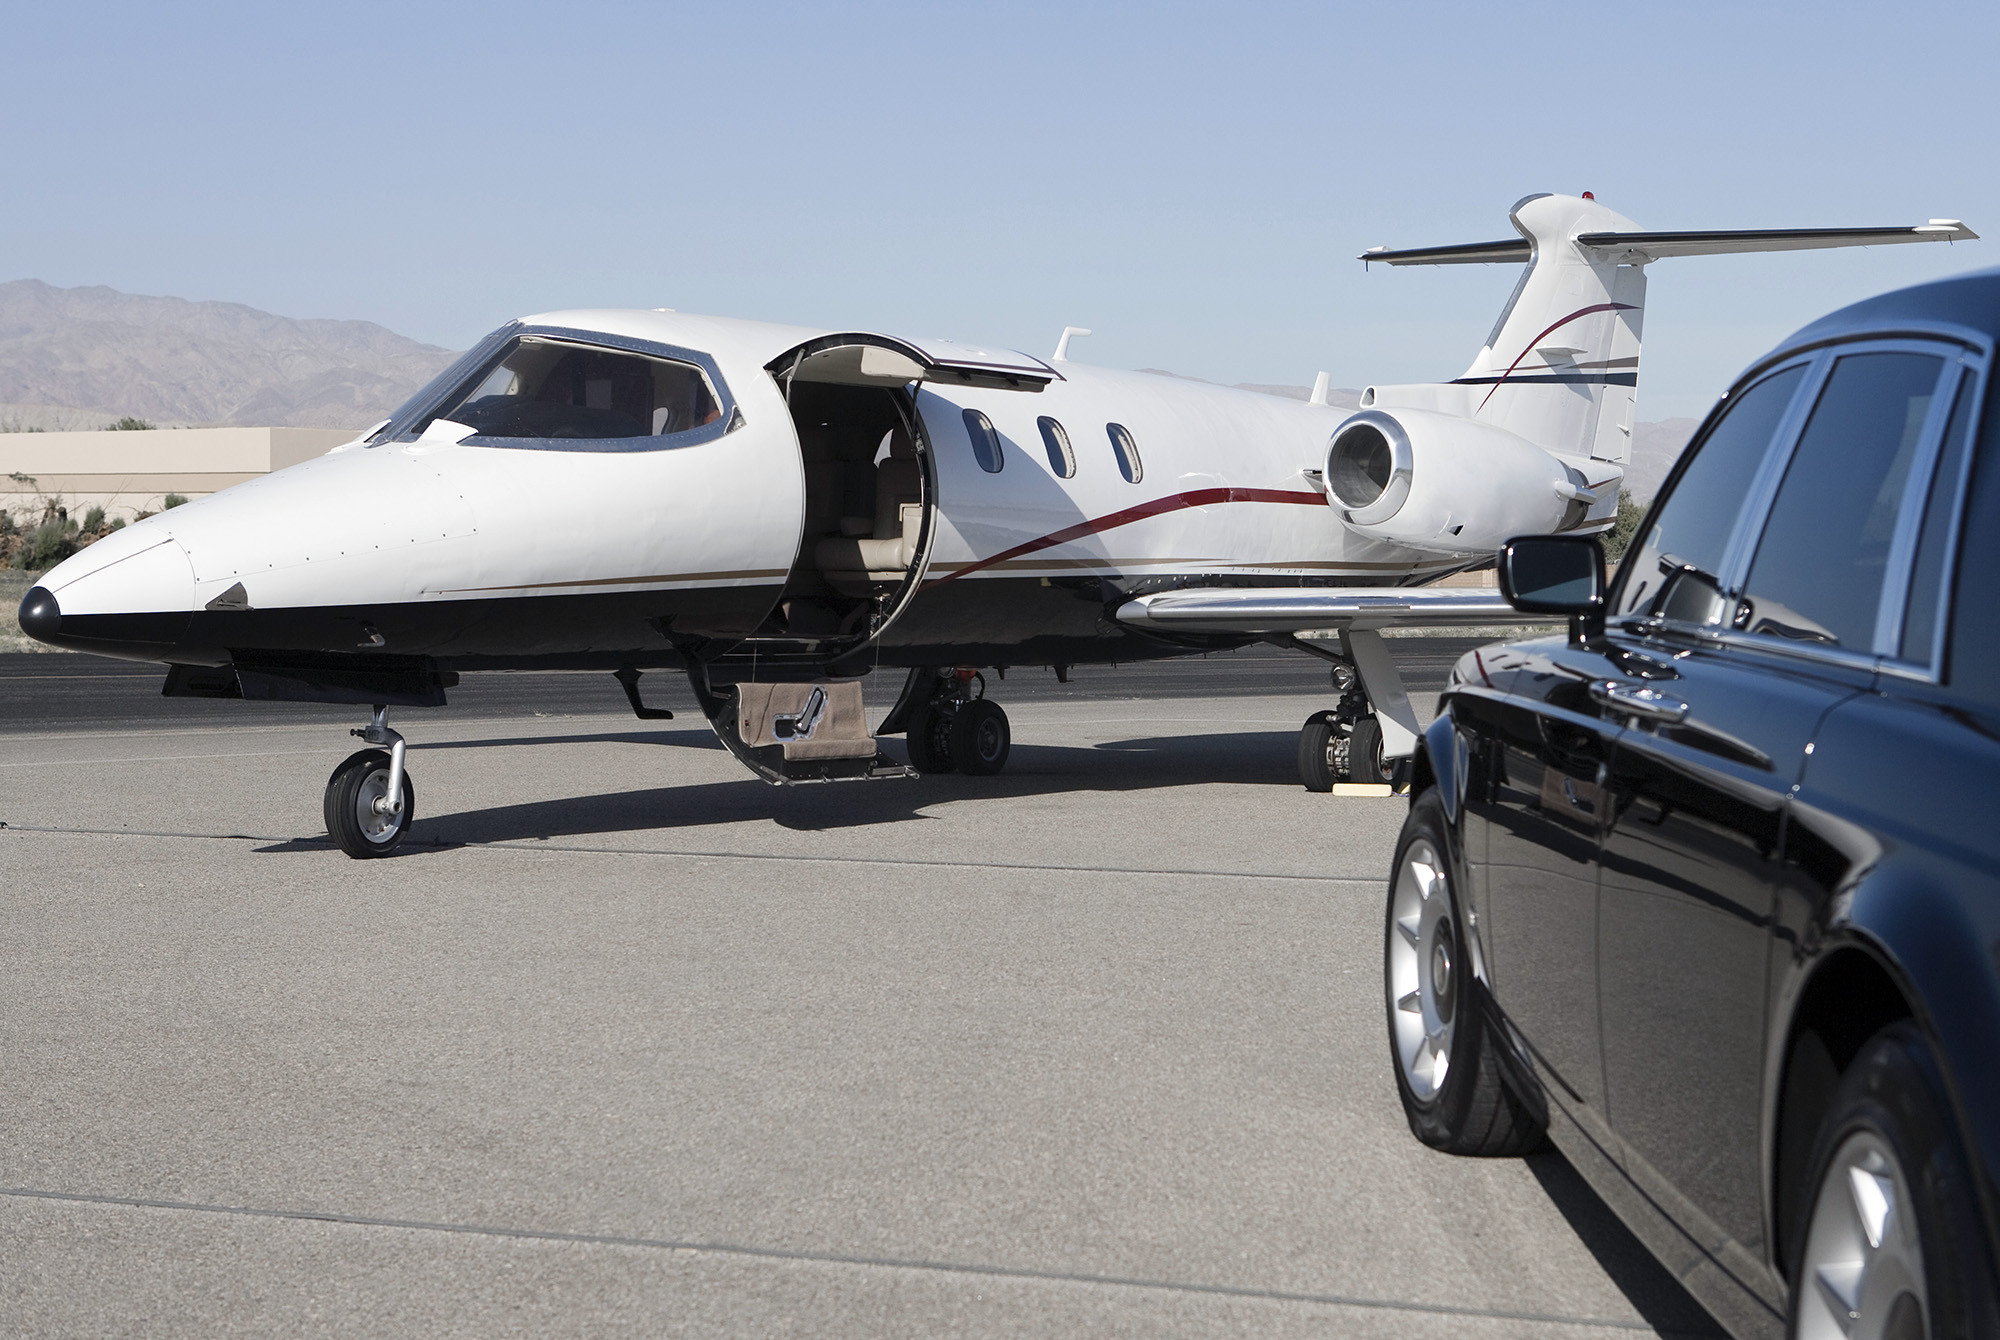 Fbo Private Jet Service New Jersey | Aston Coach